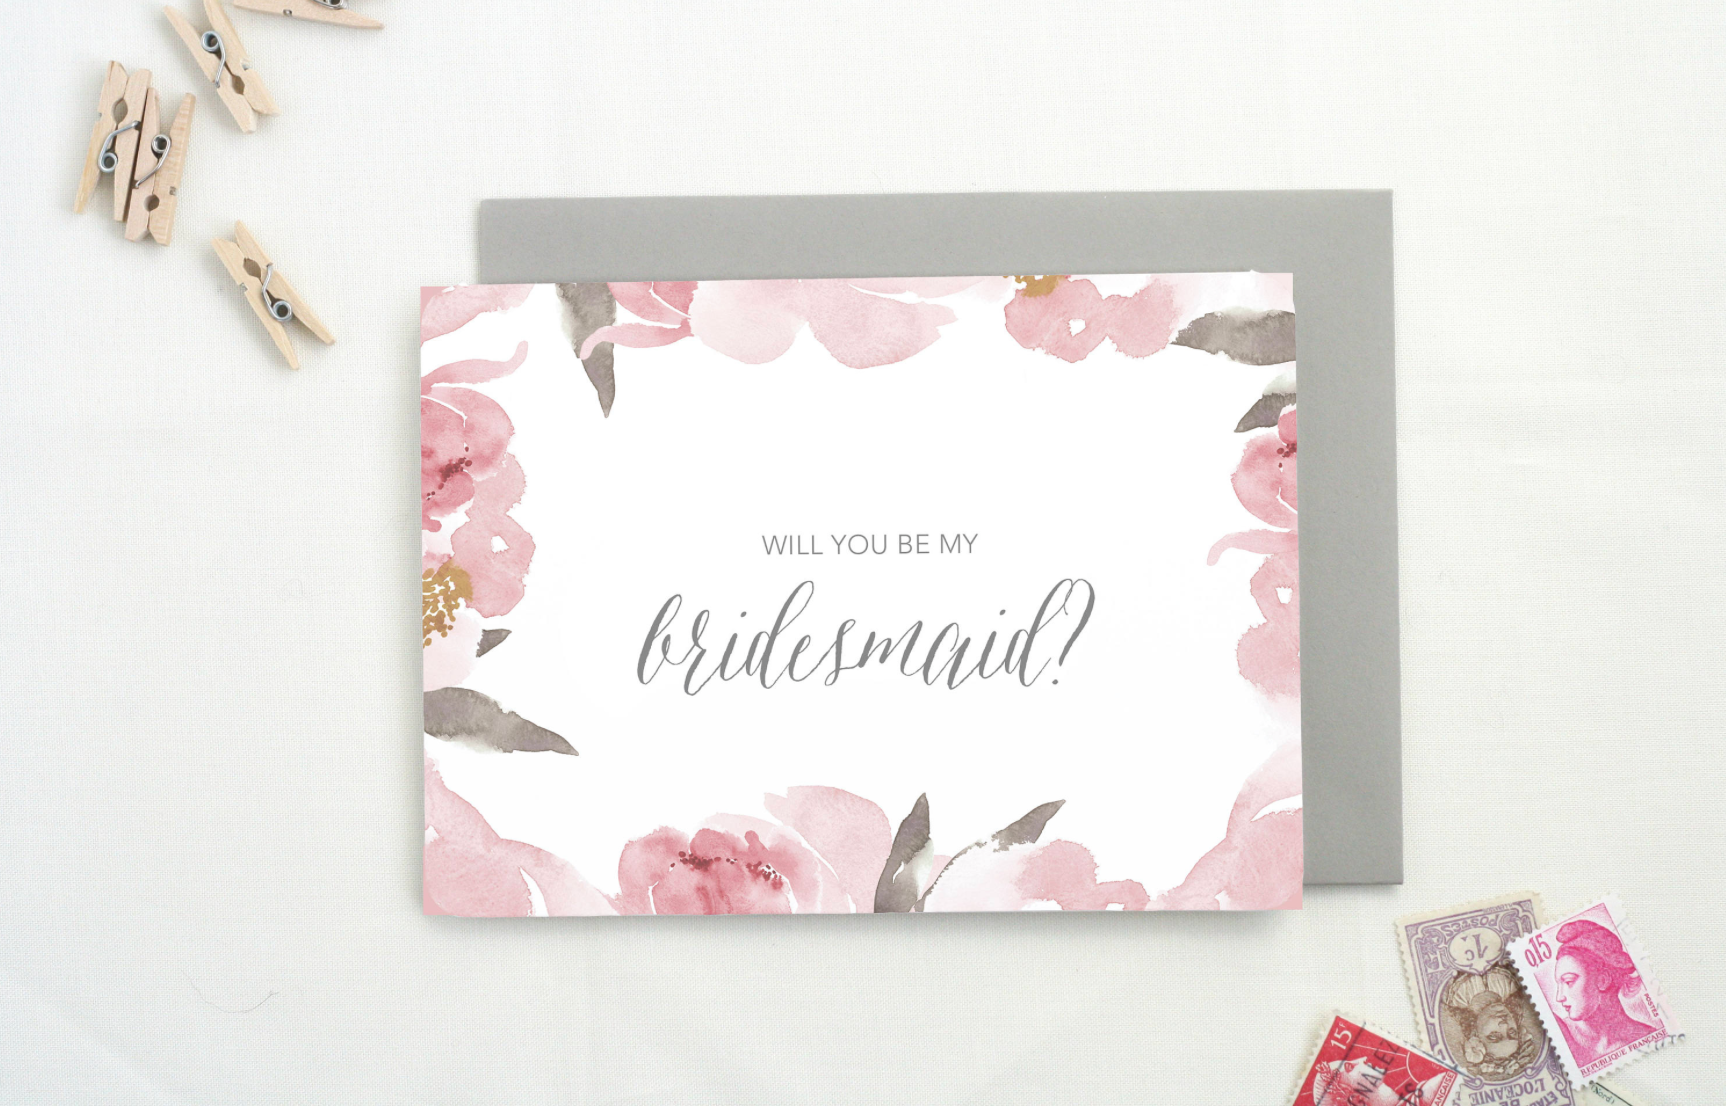 Party Proposal Bridal Party Proposal Cards Bridal Party Proposal Cards Bridesmaid .